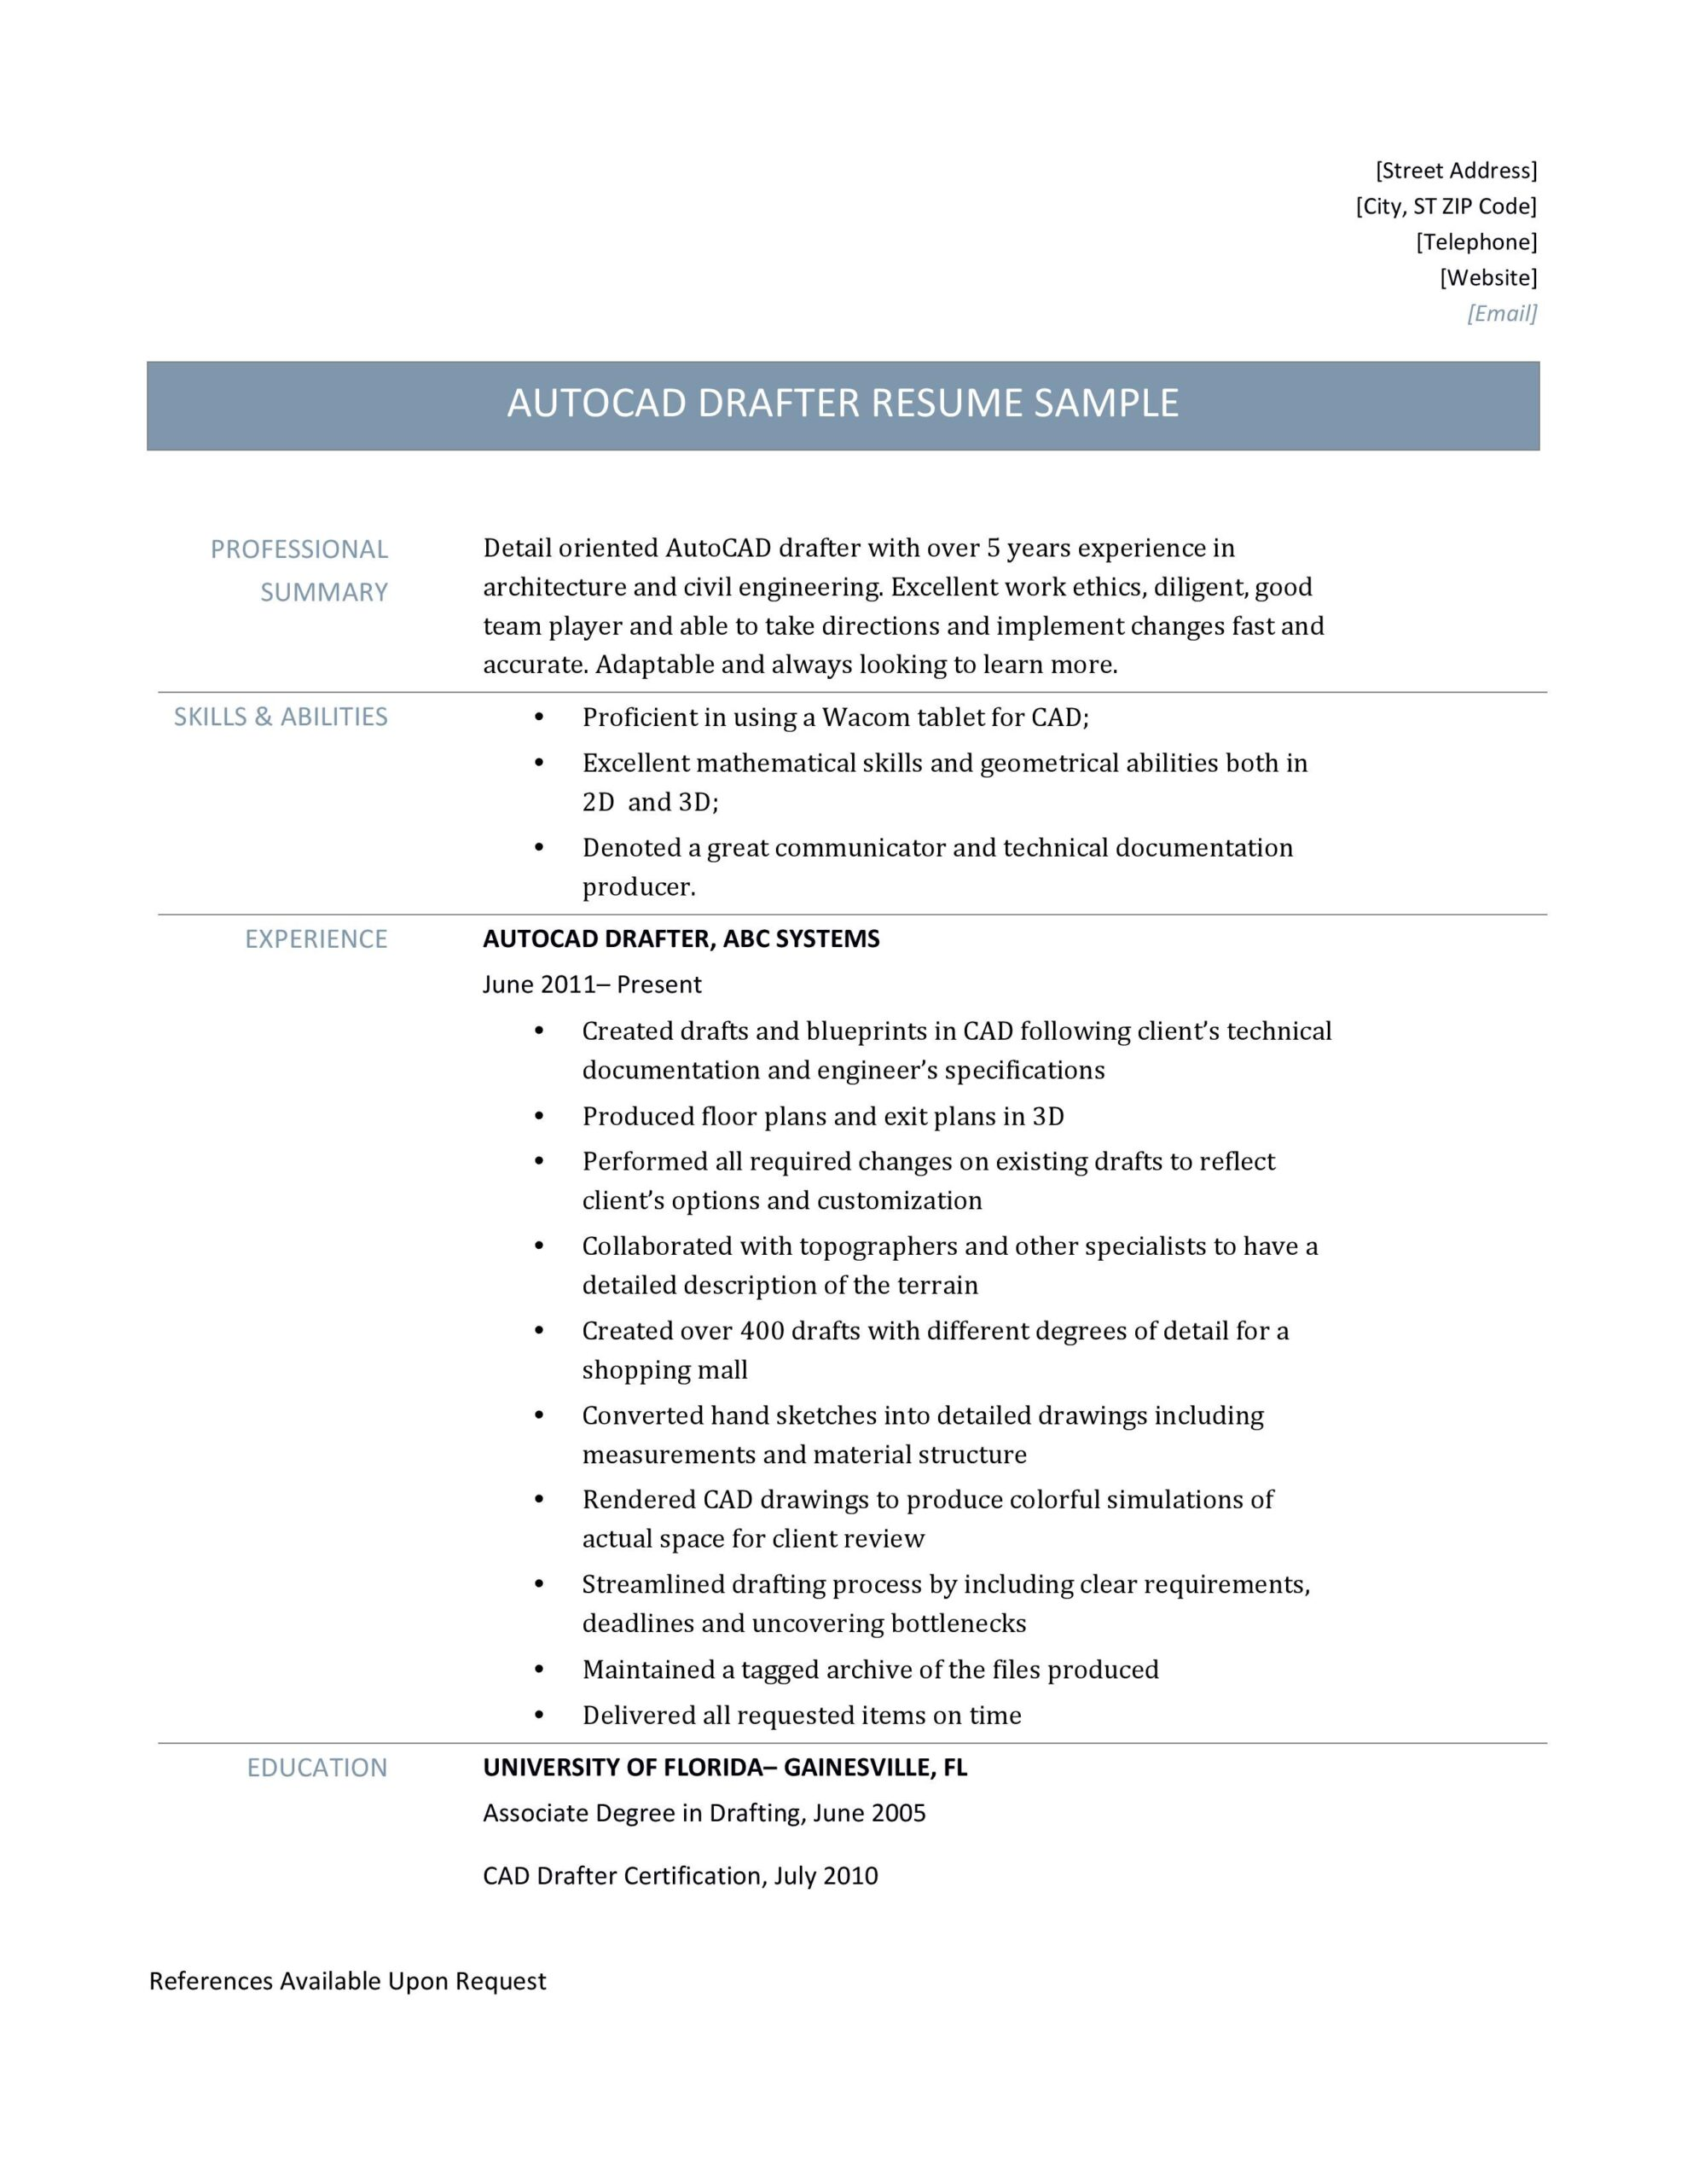 autocad drafter resume sample and job description by builders medium draftsman j2pkzgo0yb Resume Autocad Draftsman Resume